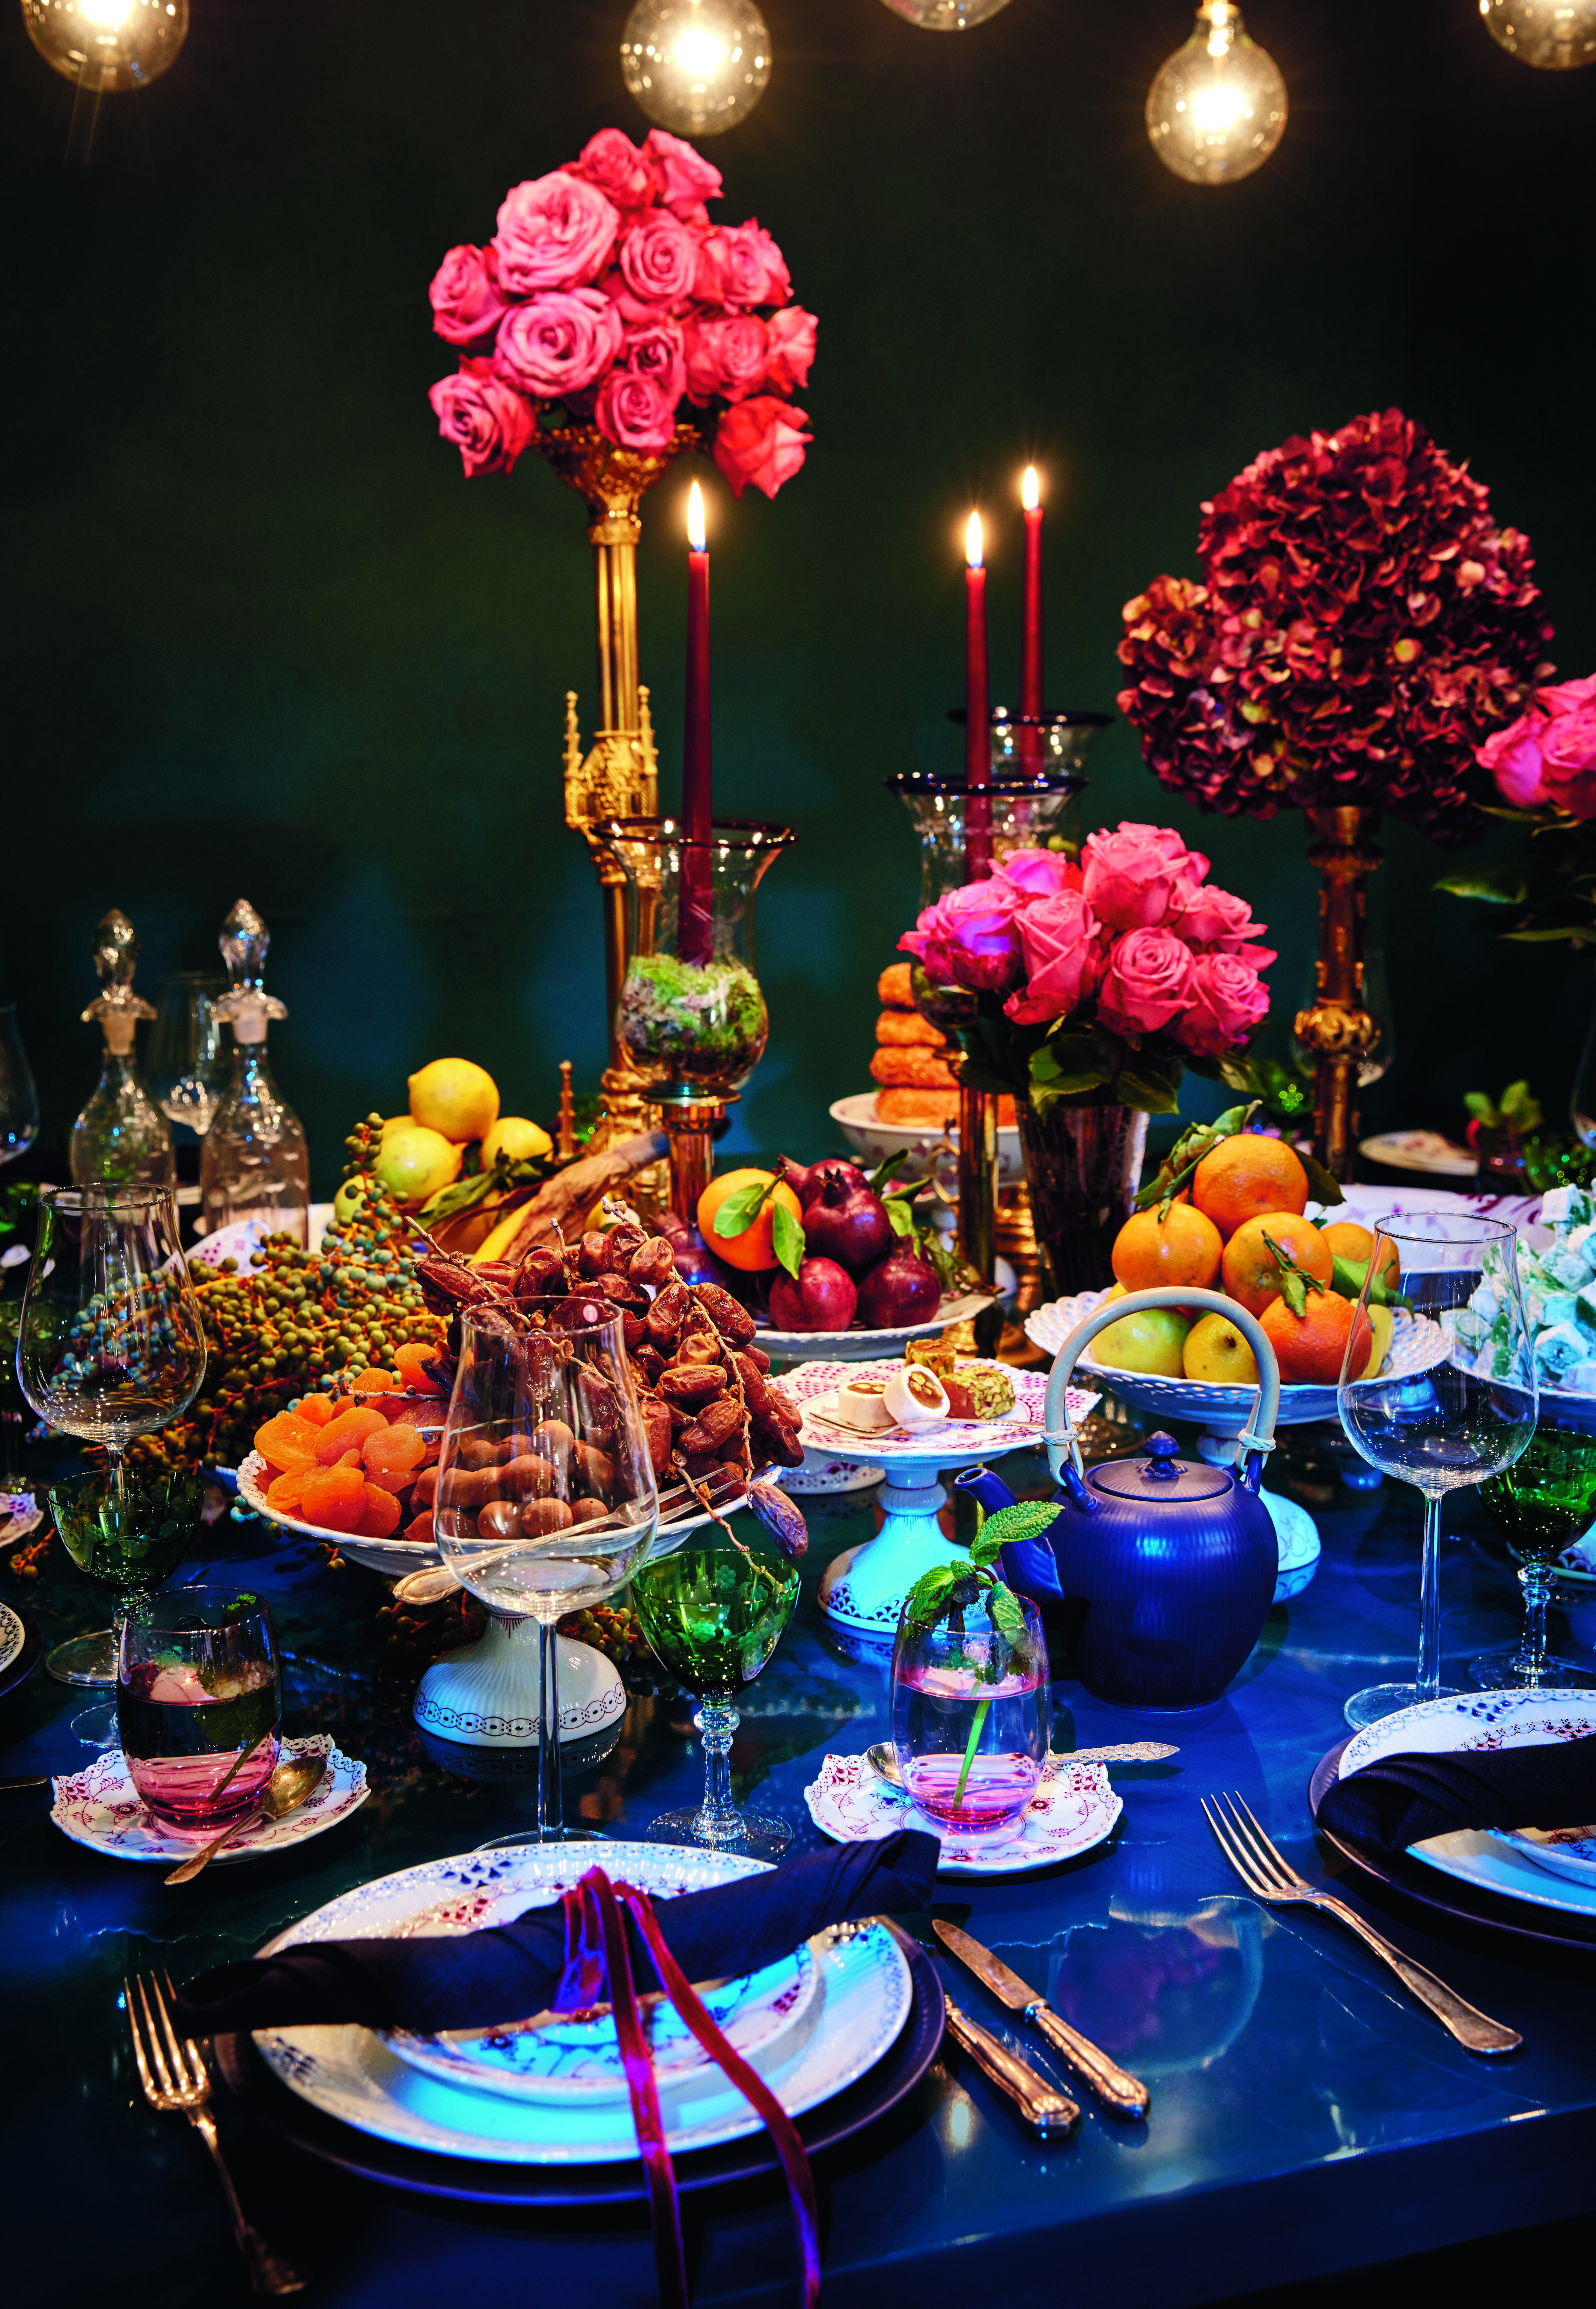 fashionable Christmas - a Middle Eastern-inspired table by Leyla Piedayesh combines midnight colors with lush displays of flowers and plates of fruit using Blue Fluted and Half Lace Purpur china - Royal Copenhagen via Atticmag